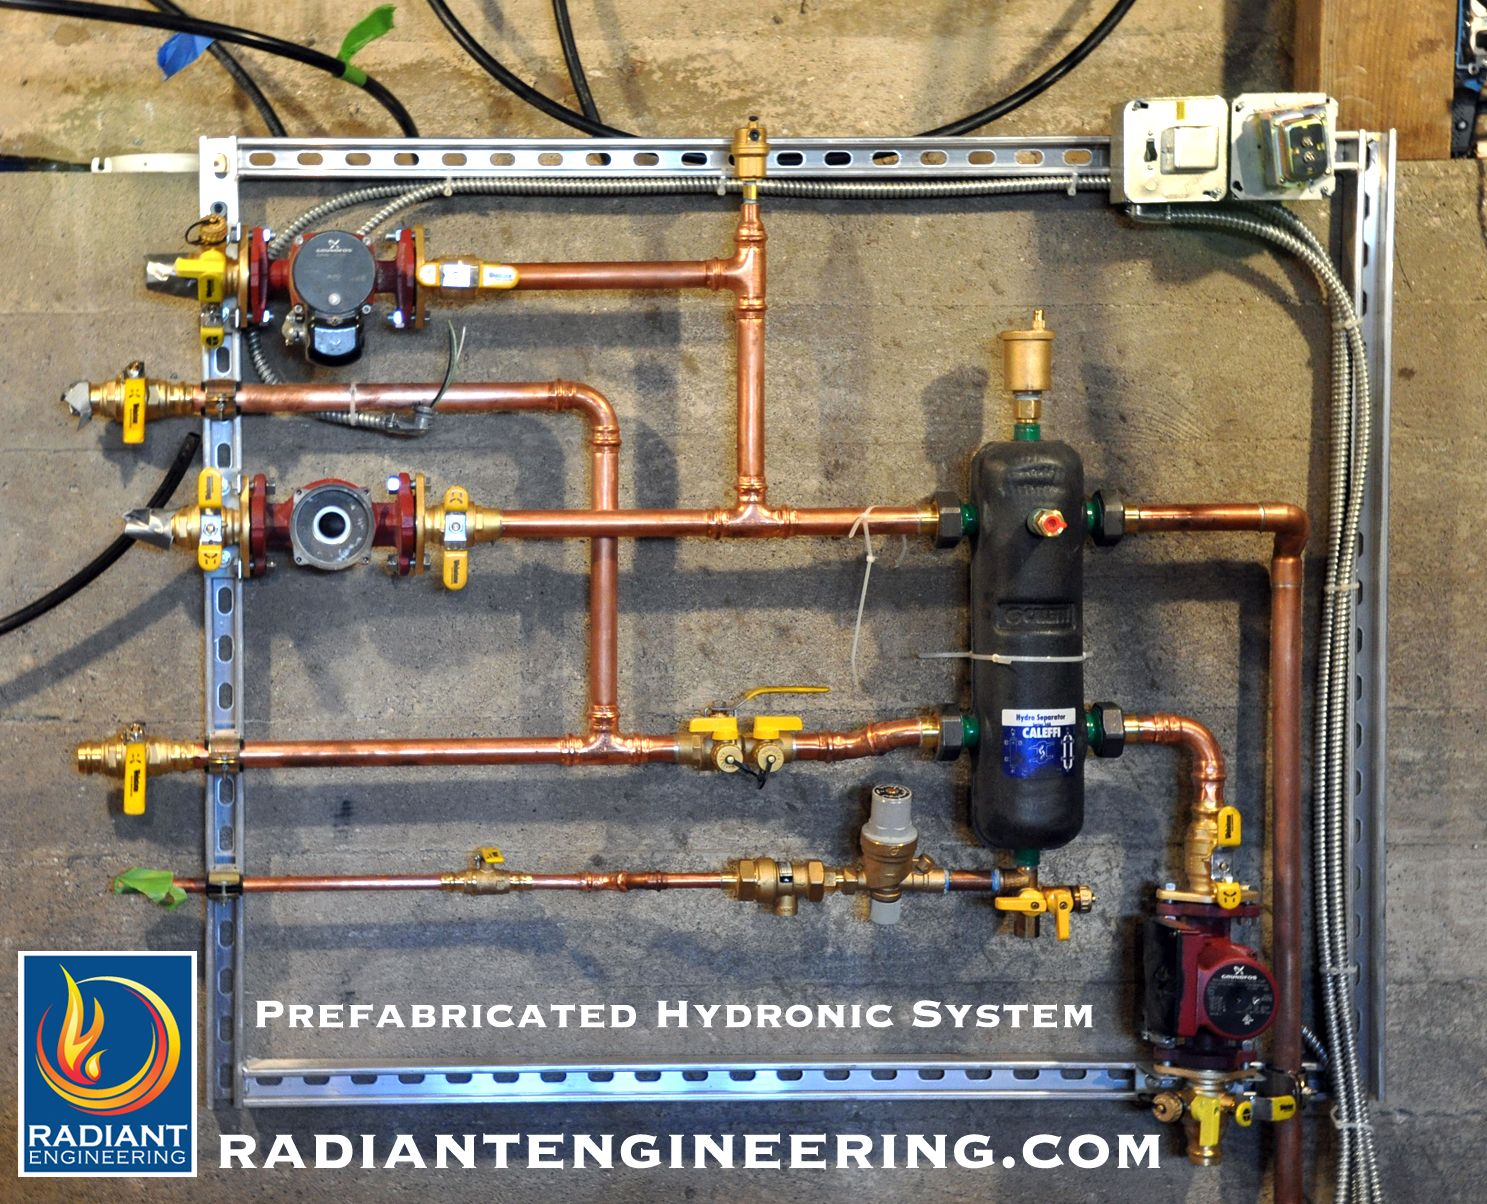 Radiant Engineering Manufactures Pre Fabricated Hydronic Heating